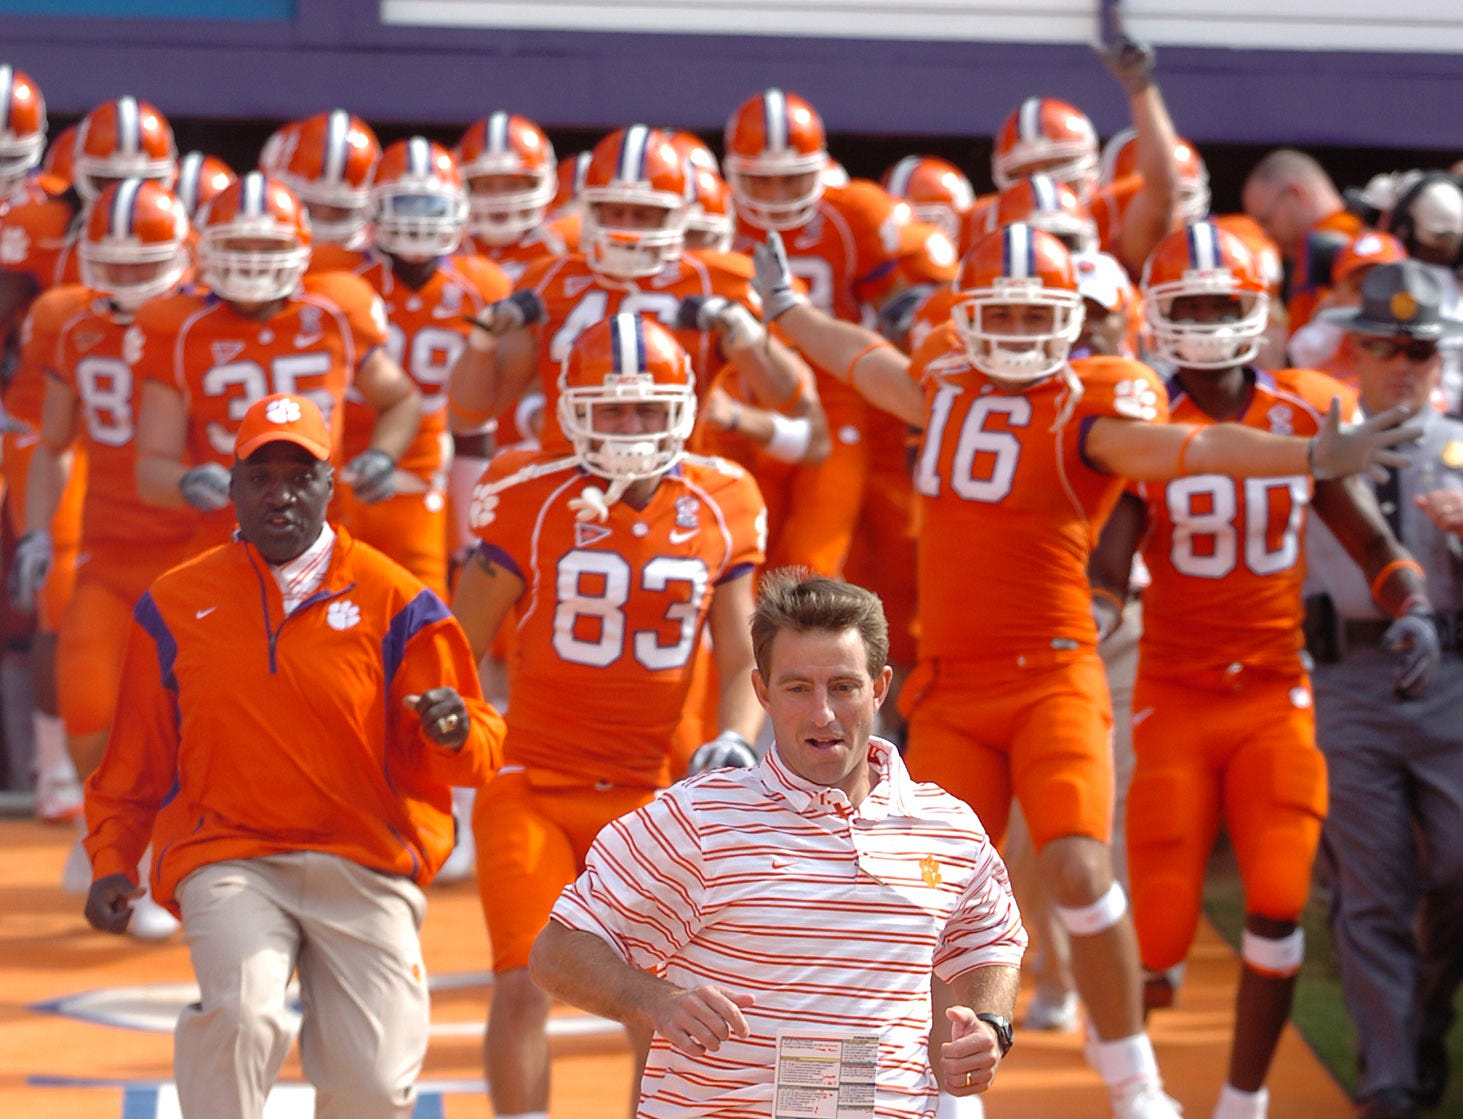 Clemson's  interim head Coach Dabo Swinney leads the Tigers down the hill before their game against Georgia Tech Saturday, Oct. 18, 2008 at Clemson's Memorial Stadium.